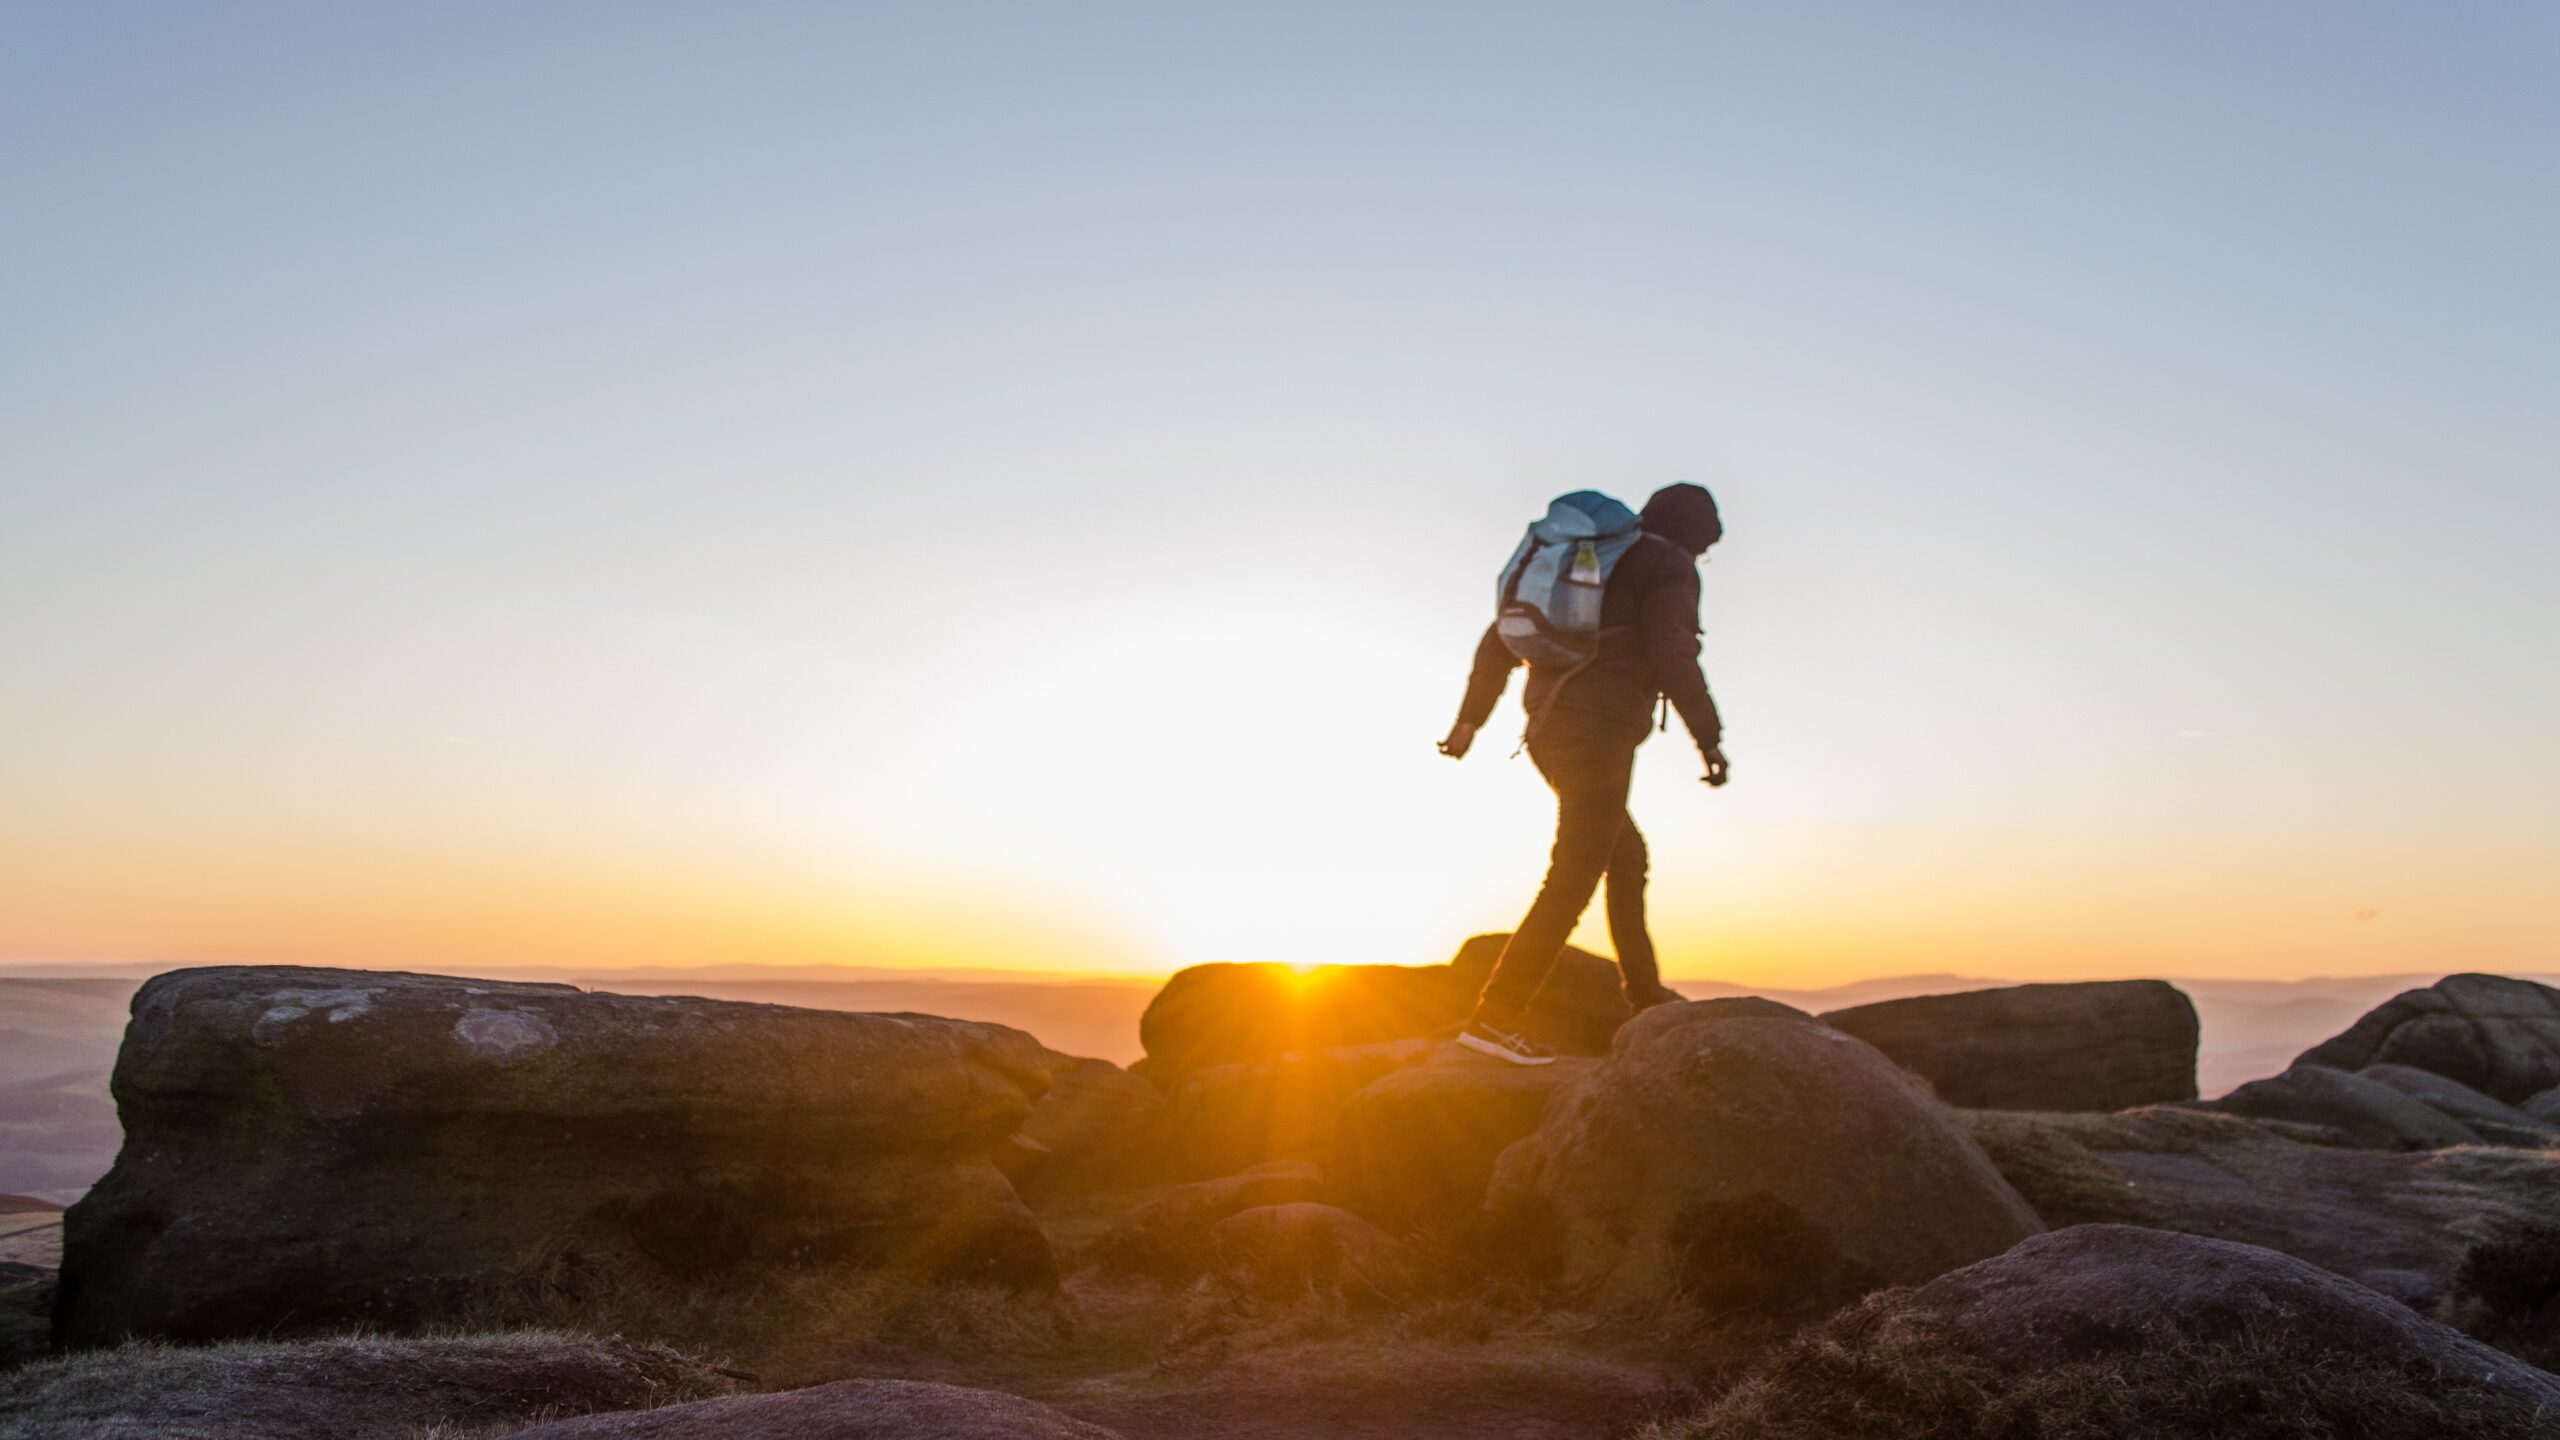 silhouette of man carrying backpack walking on stones